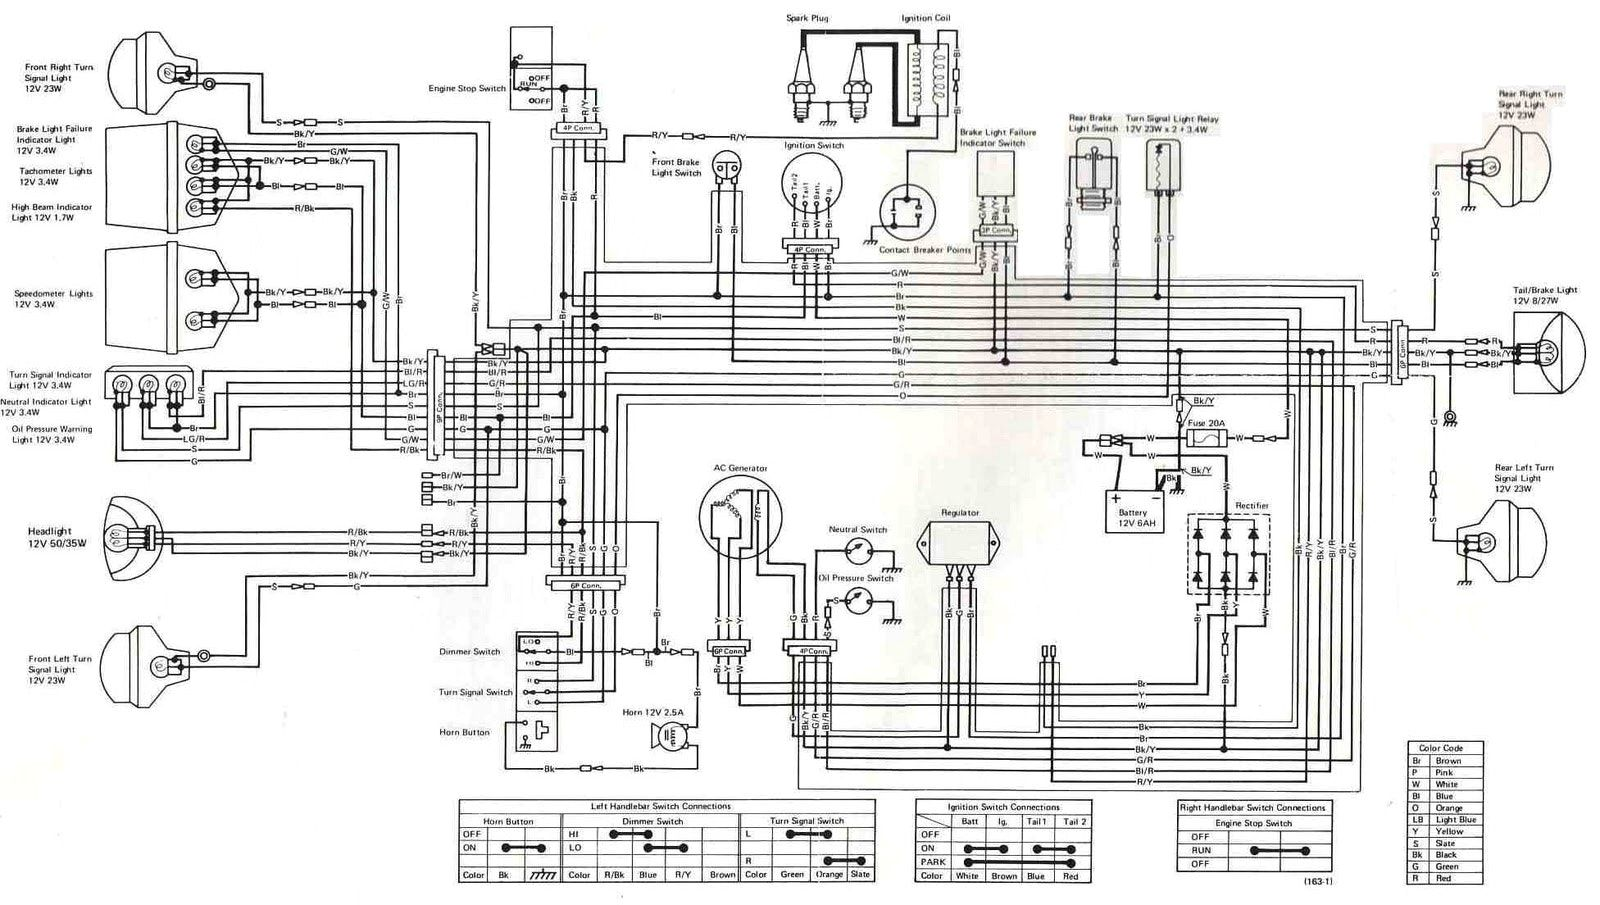 Kz400 Simple Wiring Diagram Library Kawasaki Kz1000 Ltd 1975 Schematics Diagrams U2022 Rh Ssl Forum Com Basic Electrical